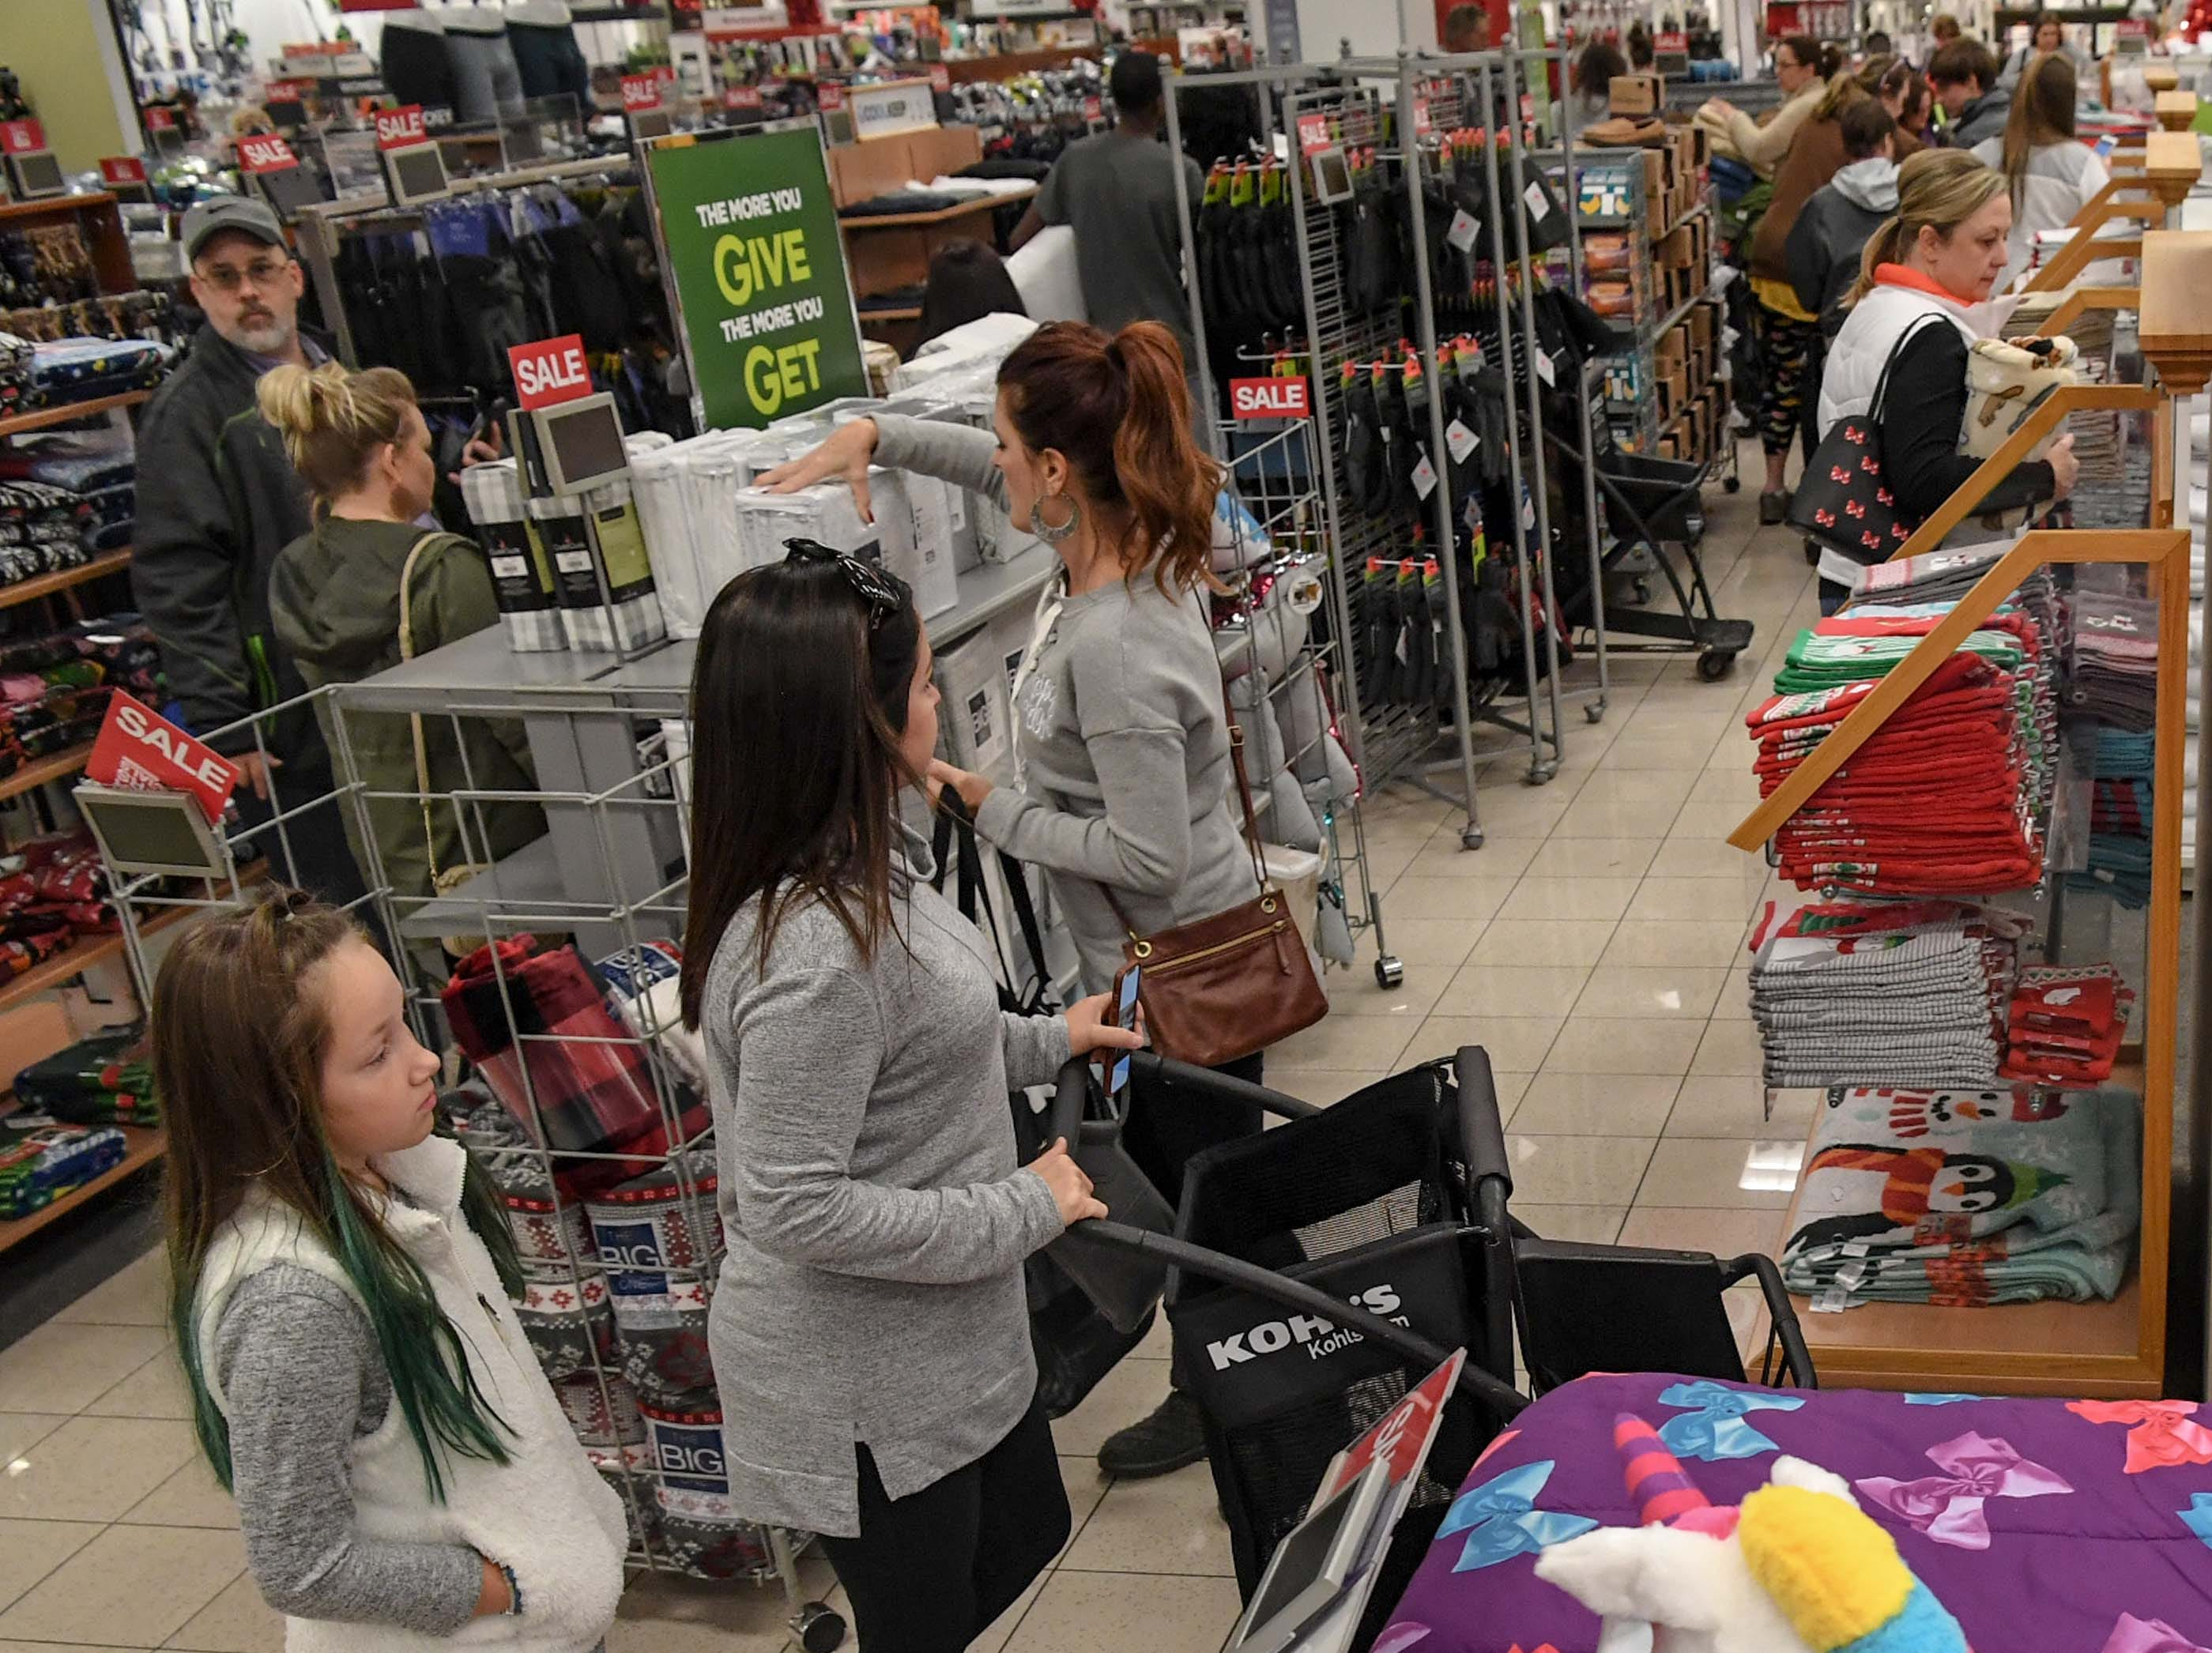 Lilah Bonette, left, and her mother Victoria Bonnette, first in line, move quickly through isles during Black Friday sales at Kohl's in Anderson on Thanksgiving Day, Thursday, November 22, 2018.